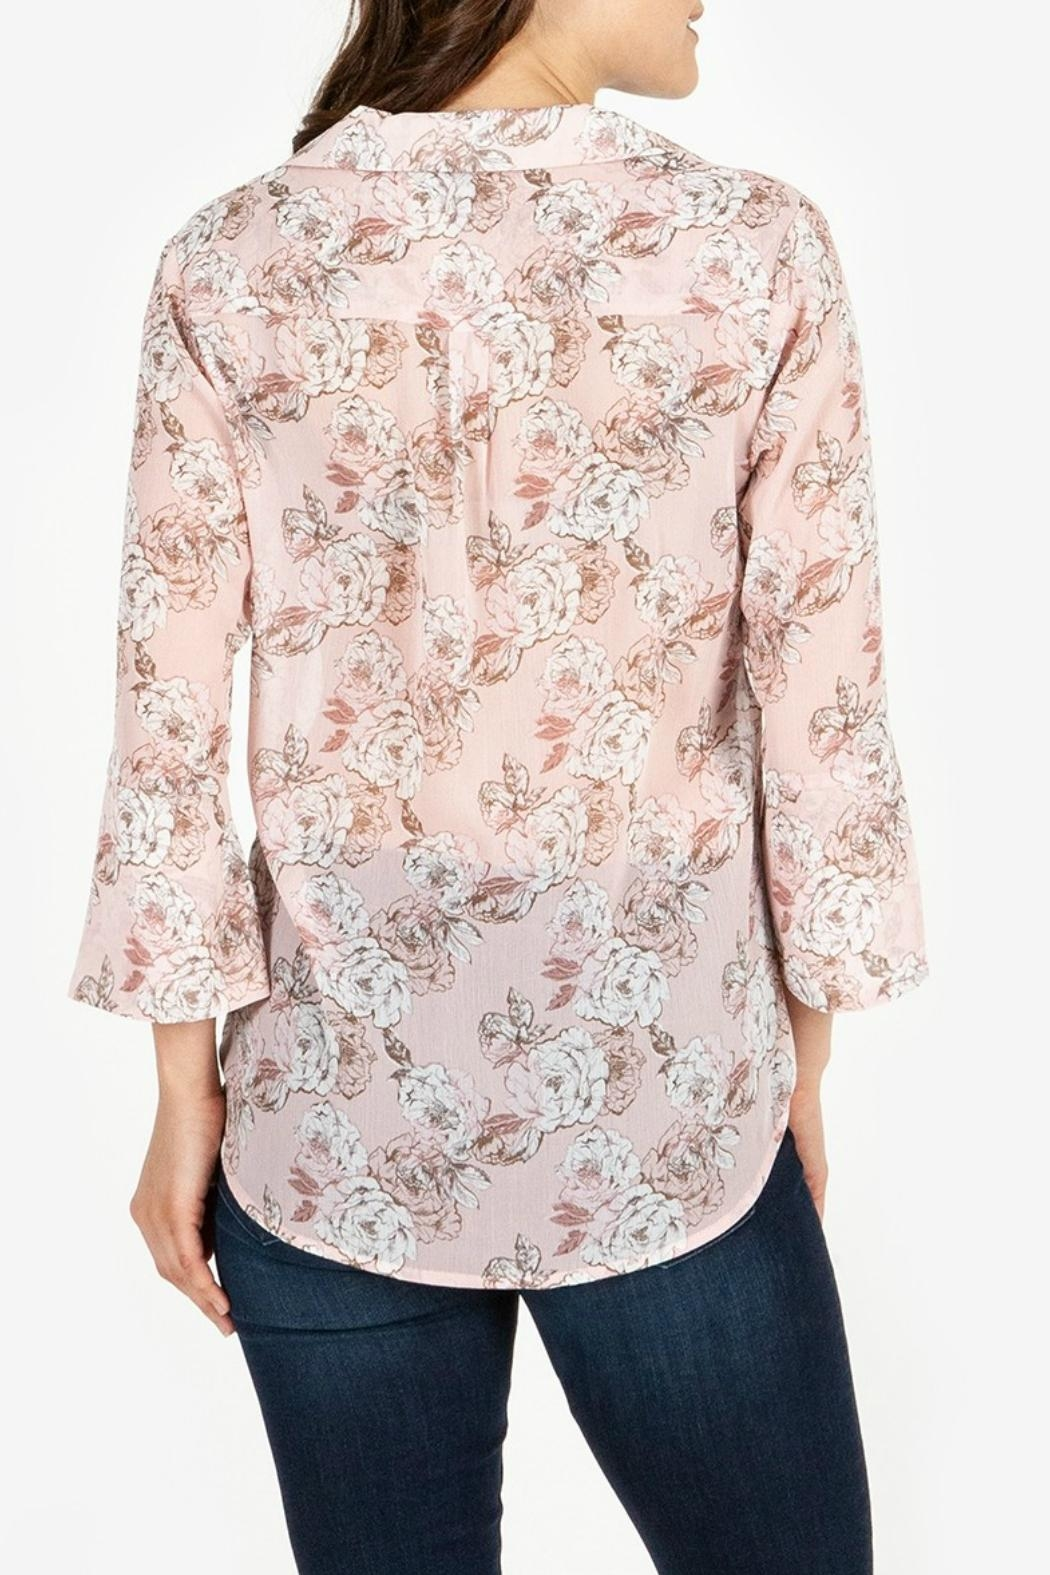 Kut from the Kloth Floral-Blouse With Flounce-Sleeves - Front Full Image